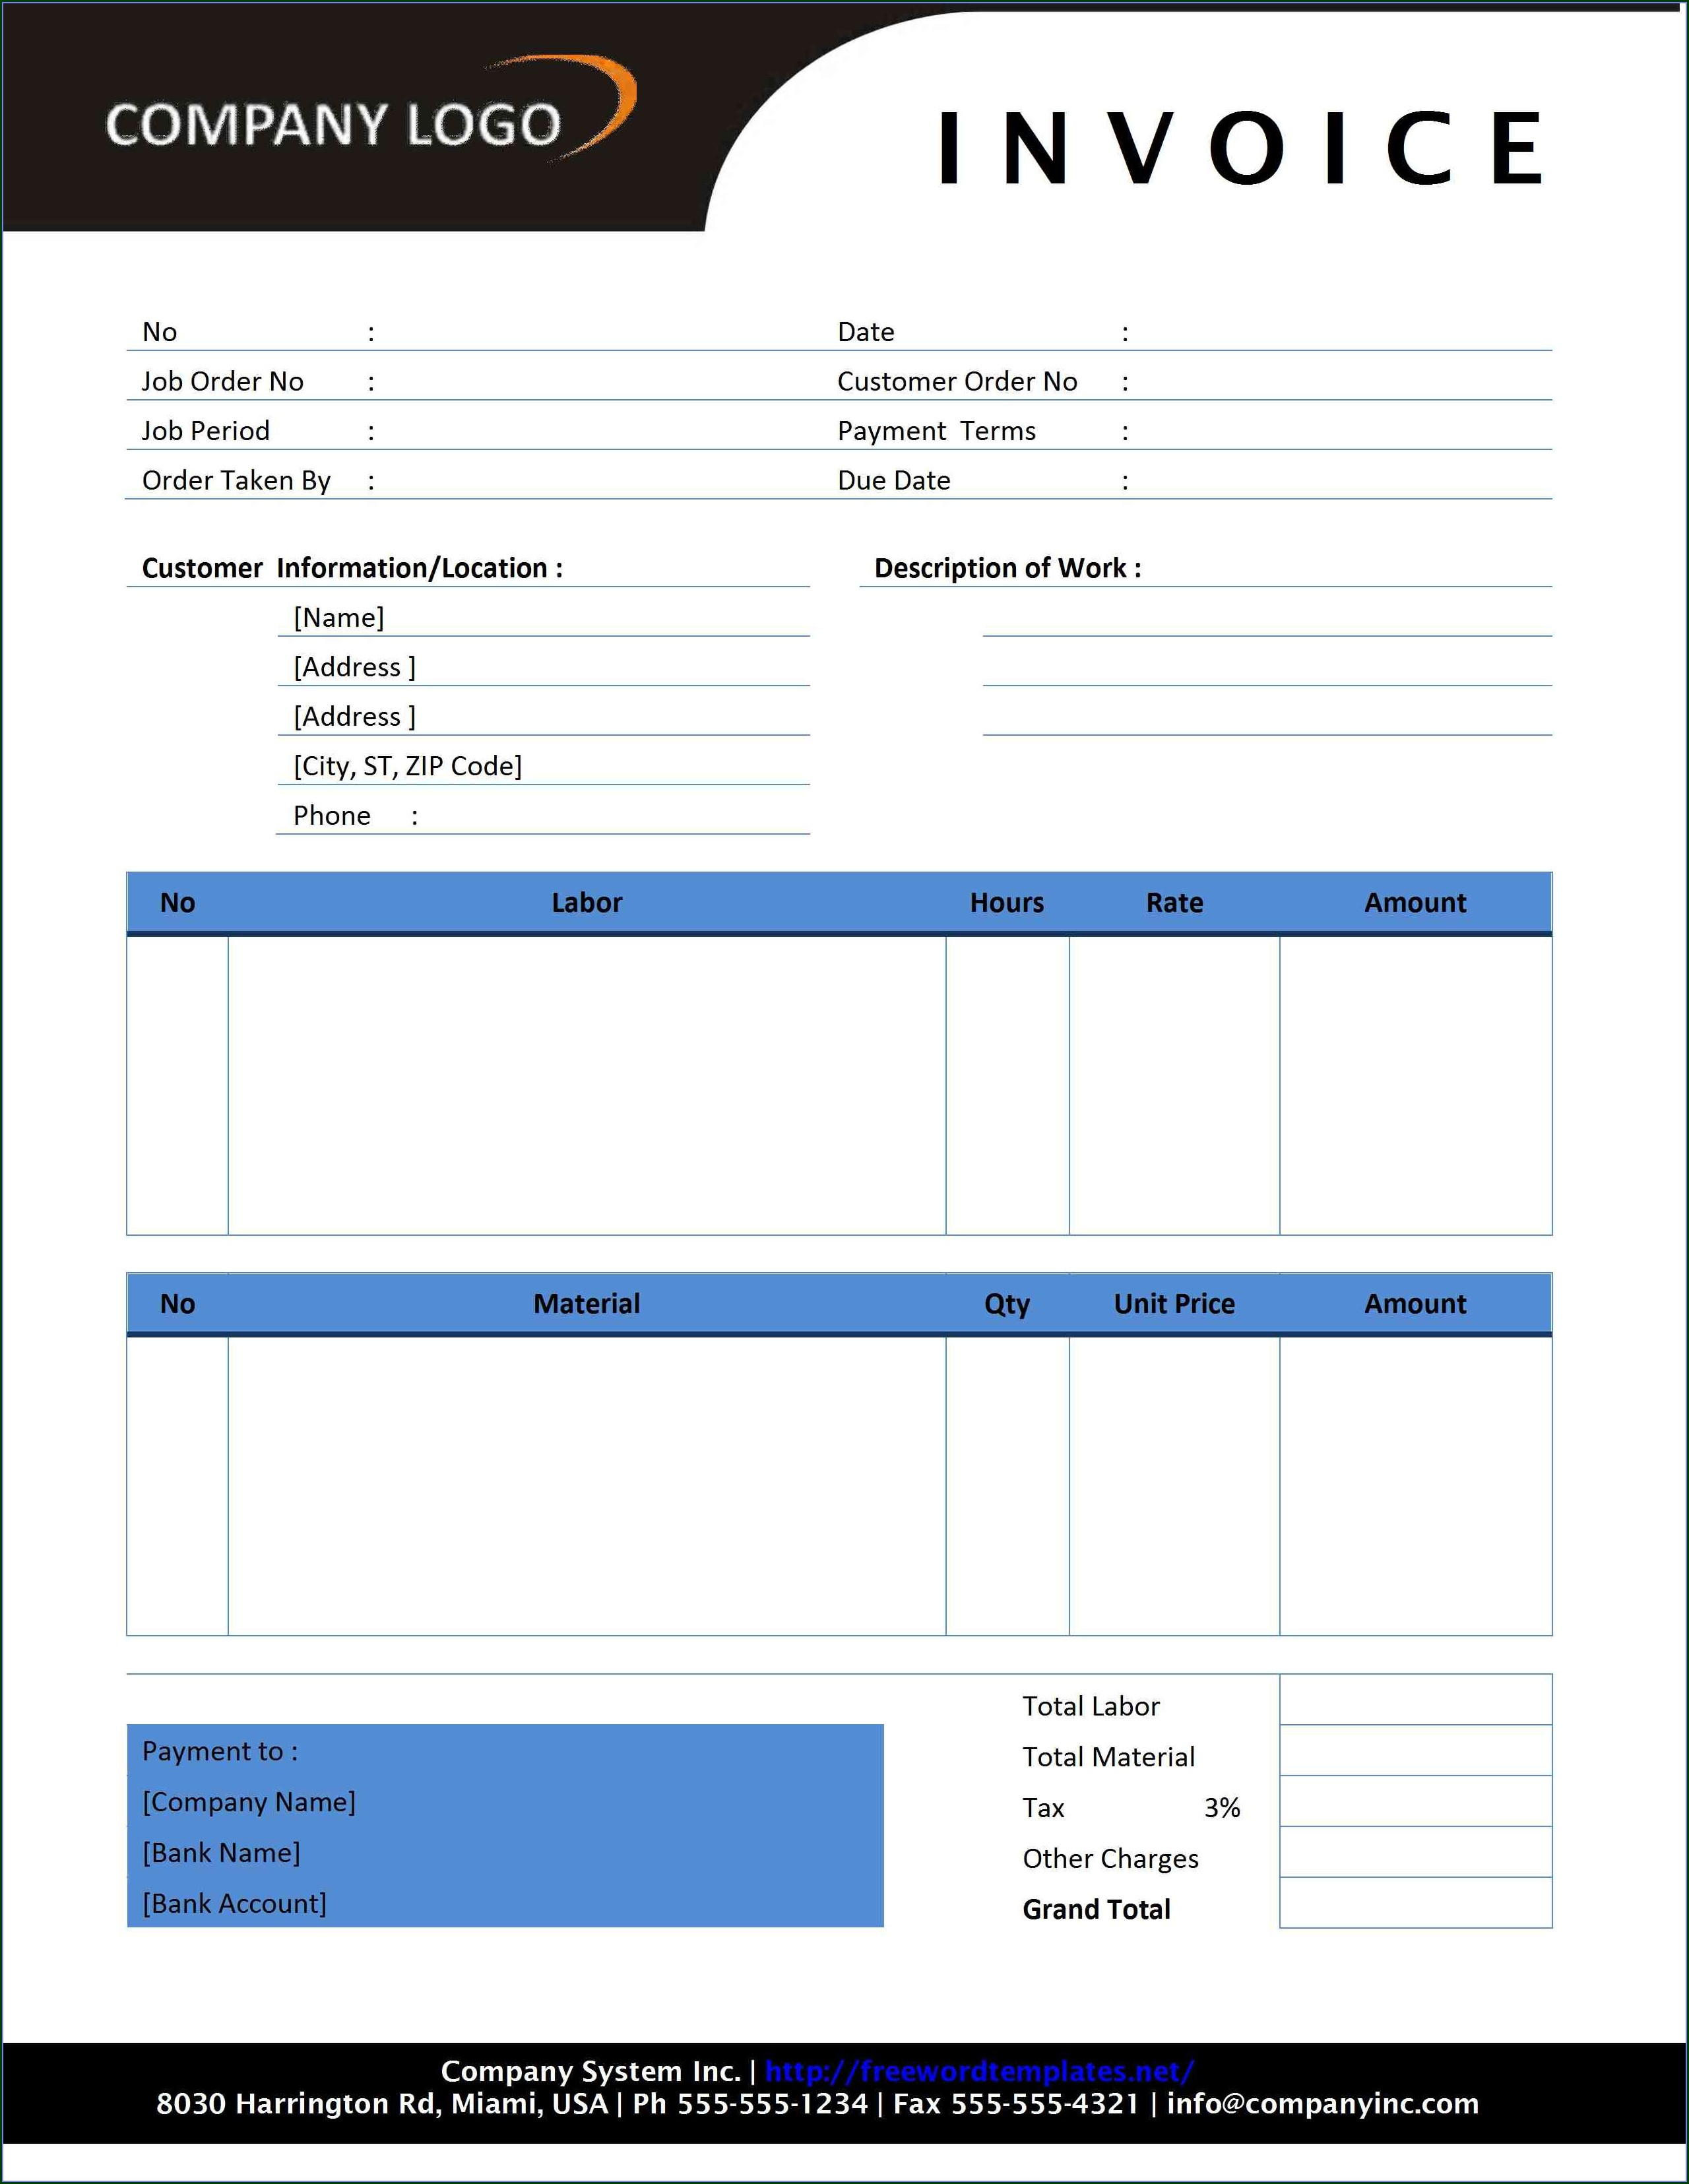 Invoice Template For Tutoring Services